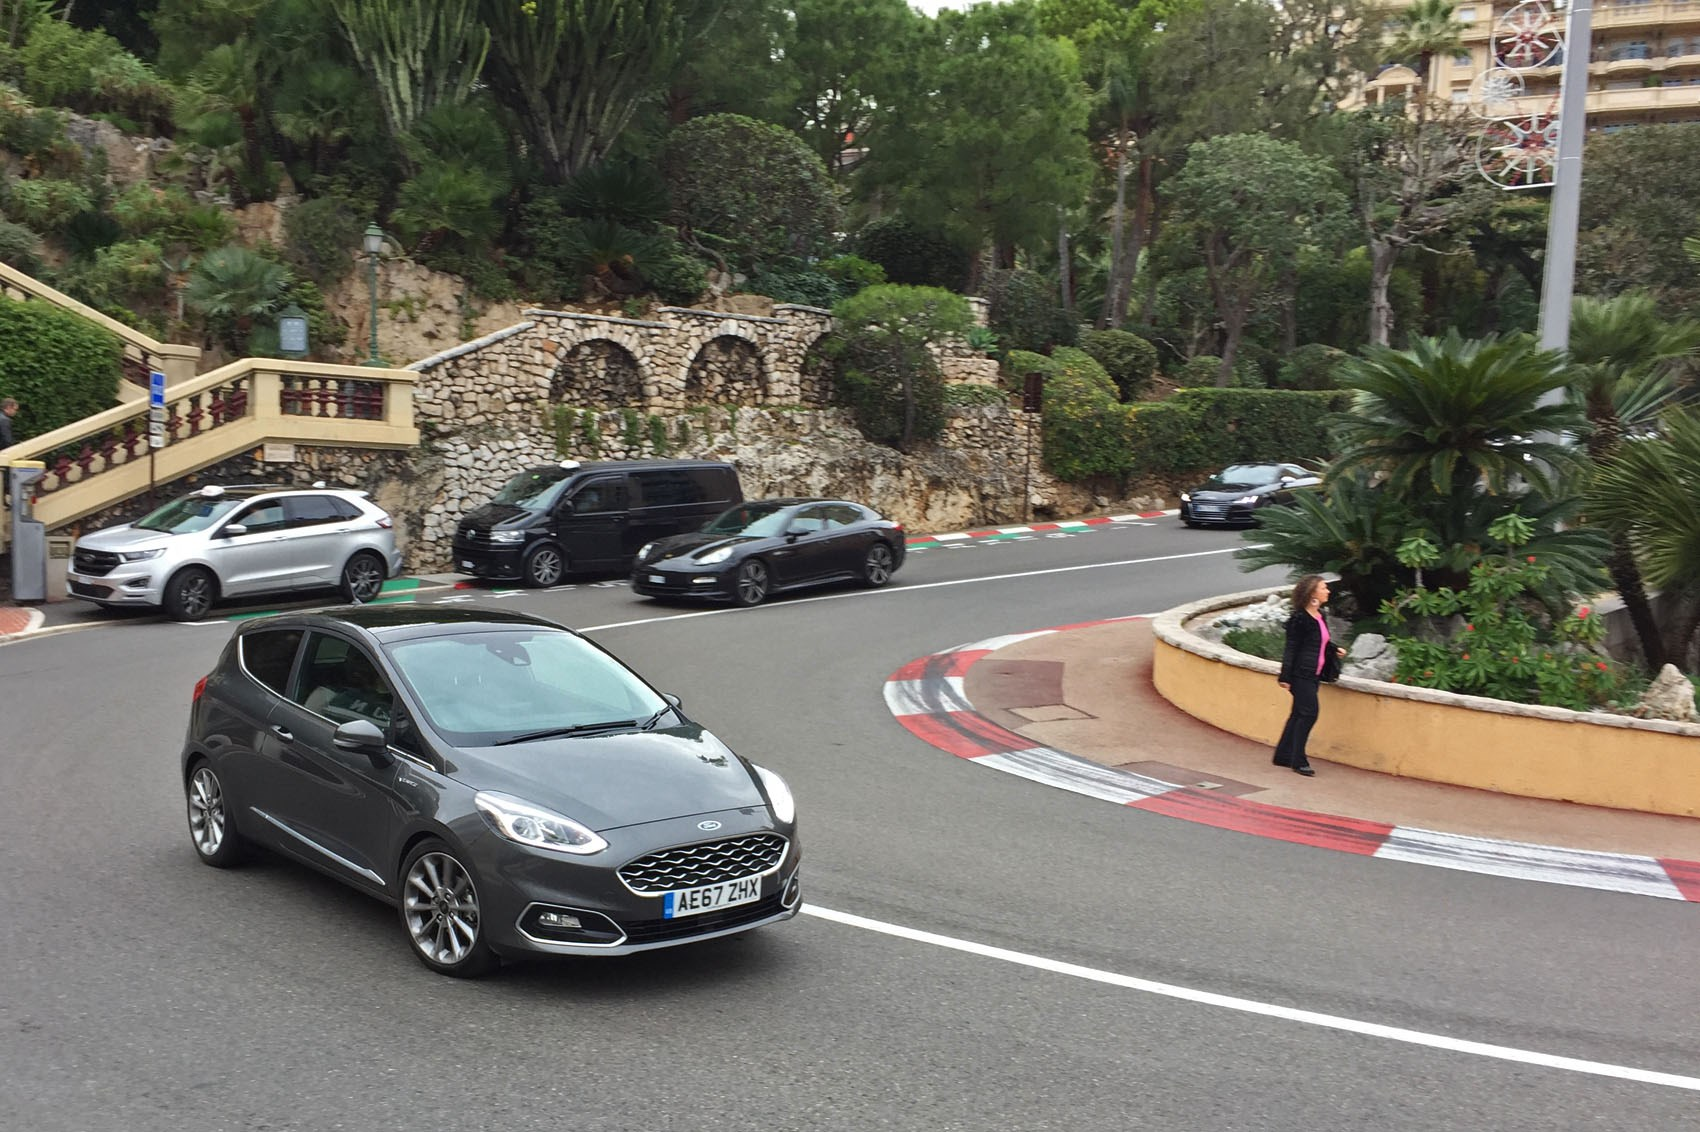 Ford Fiesta Vignale Decent Handling To Take On The Monaco Grand Prix Circuit